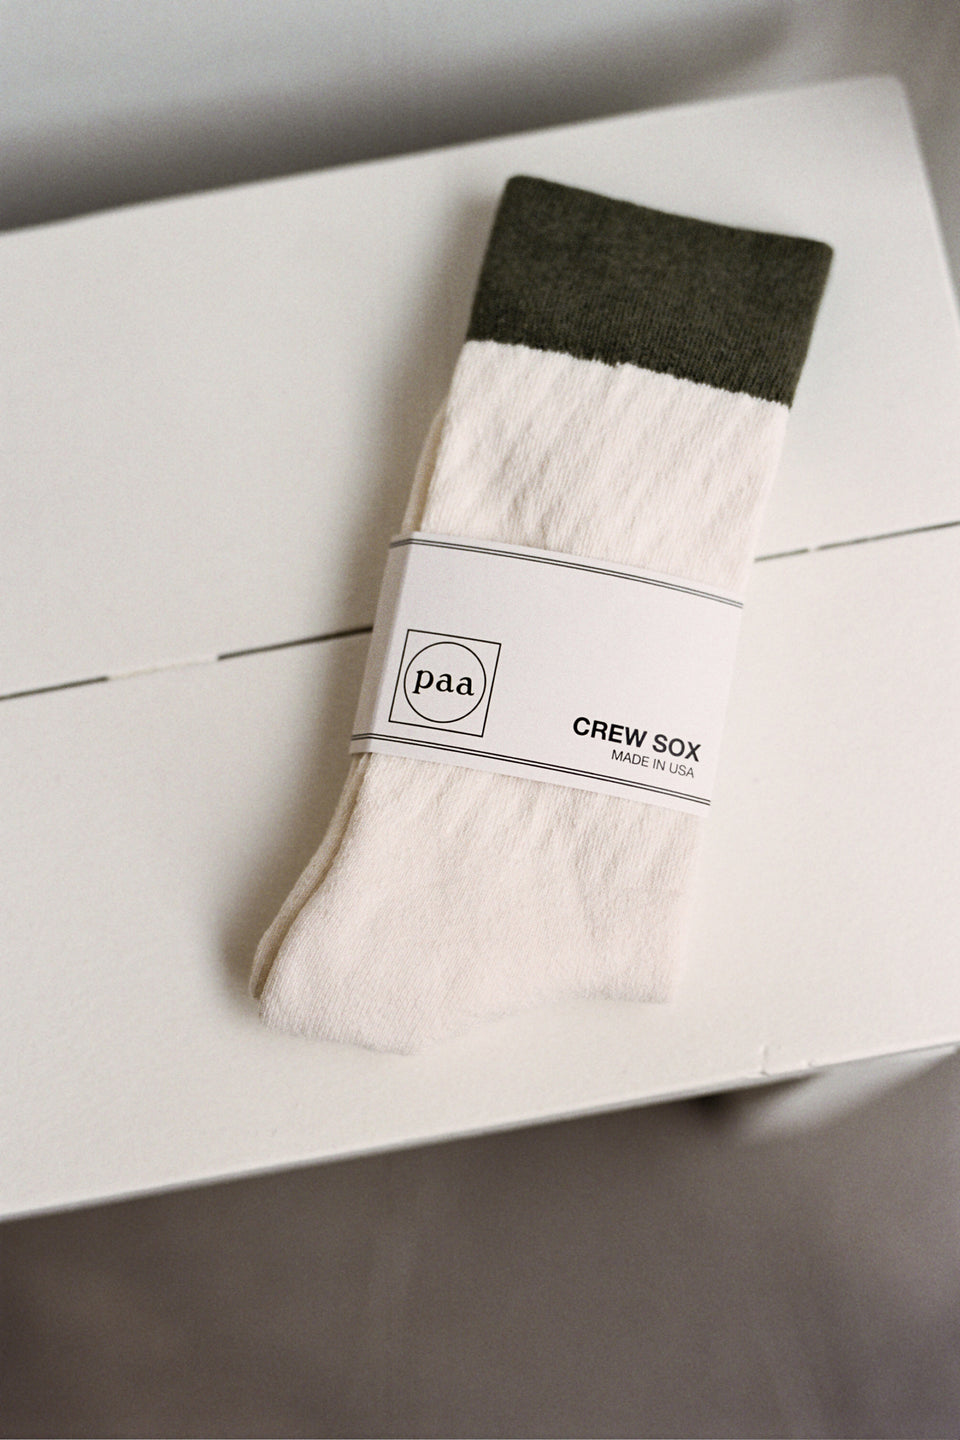 Paa NYC New York City Recycled Crew Sox 2.5 Ecru / Olive Calculus Victoria BC Canada